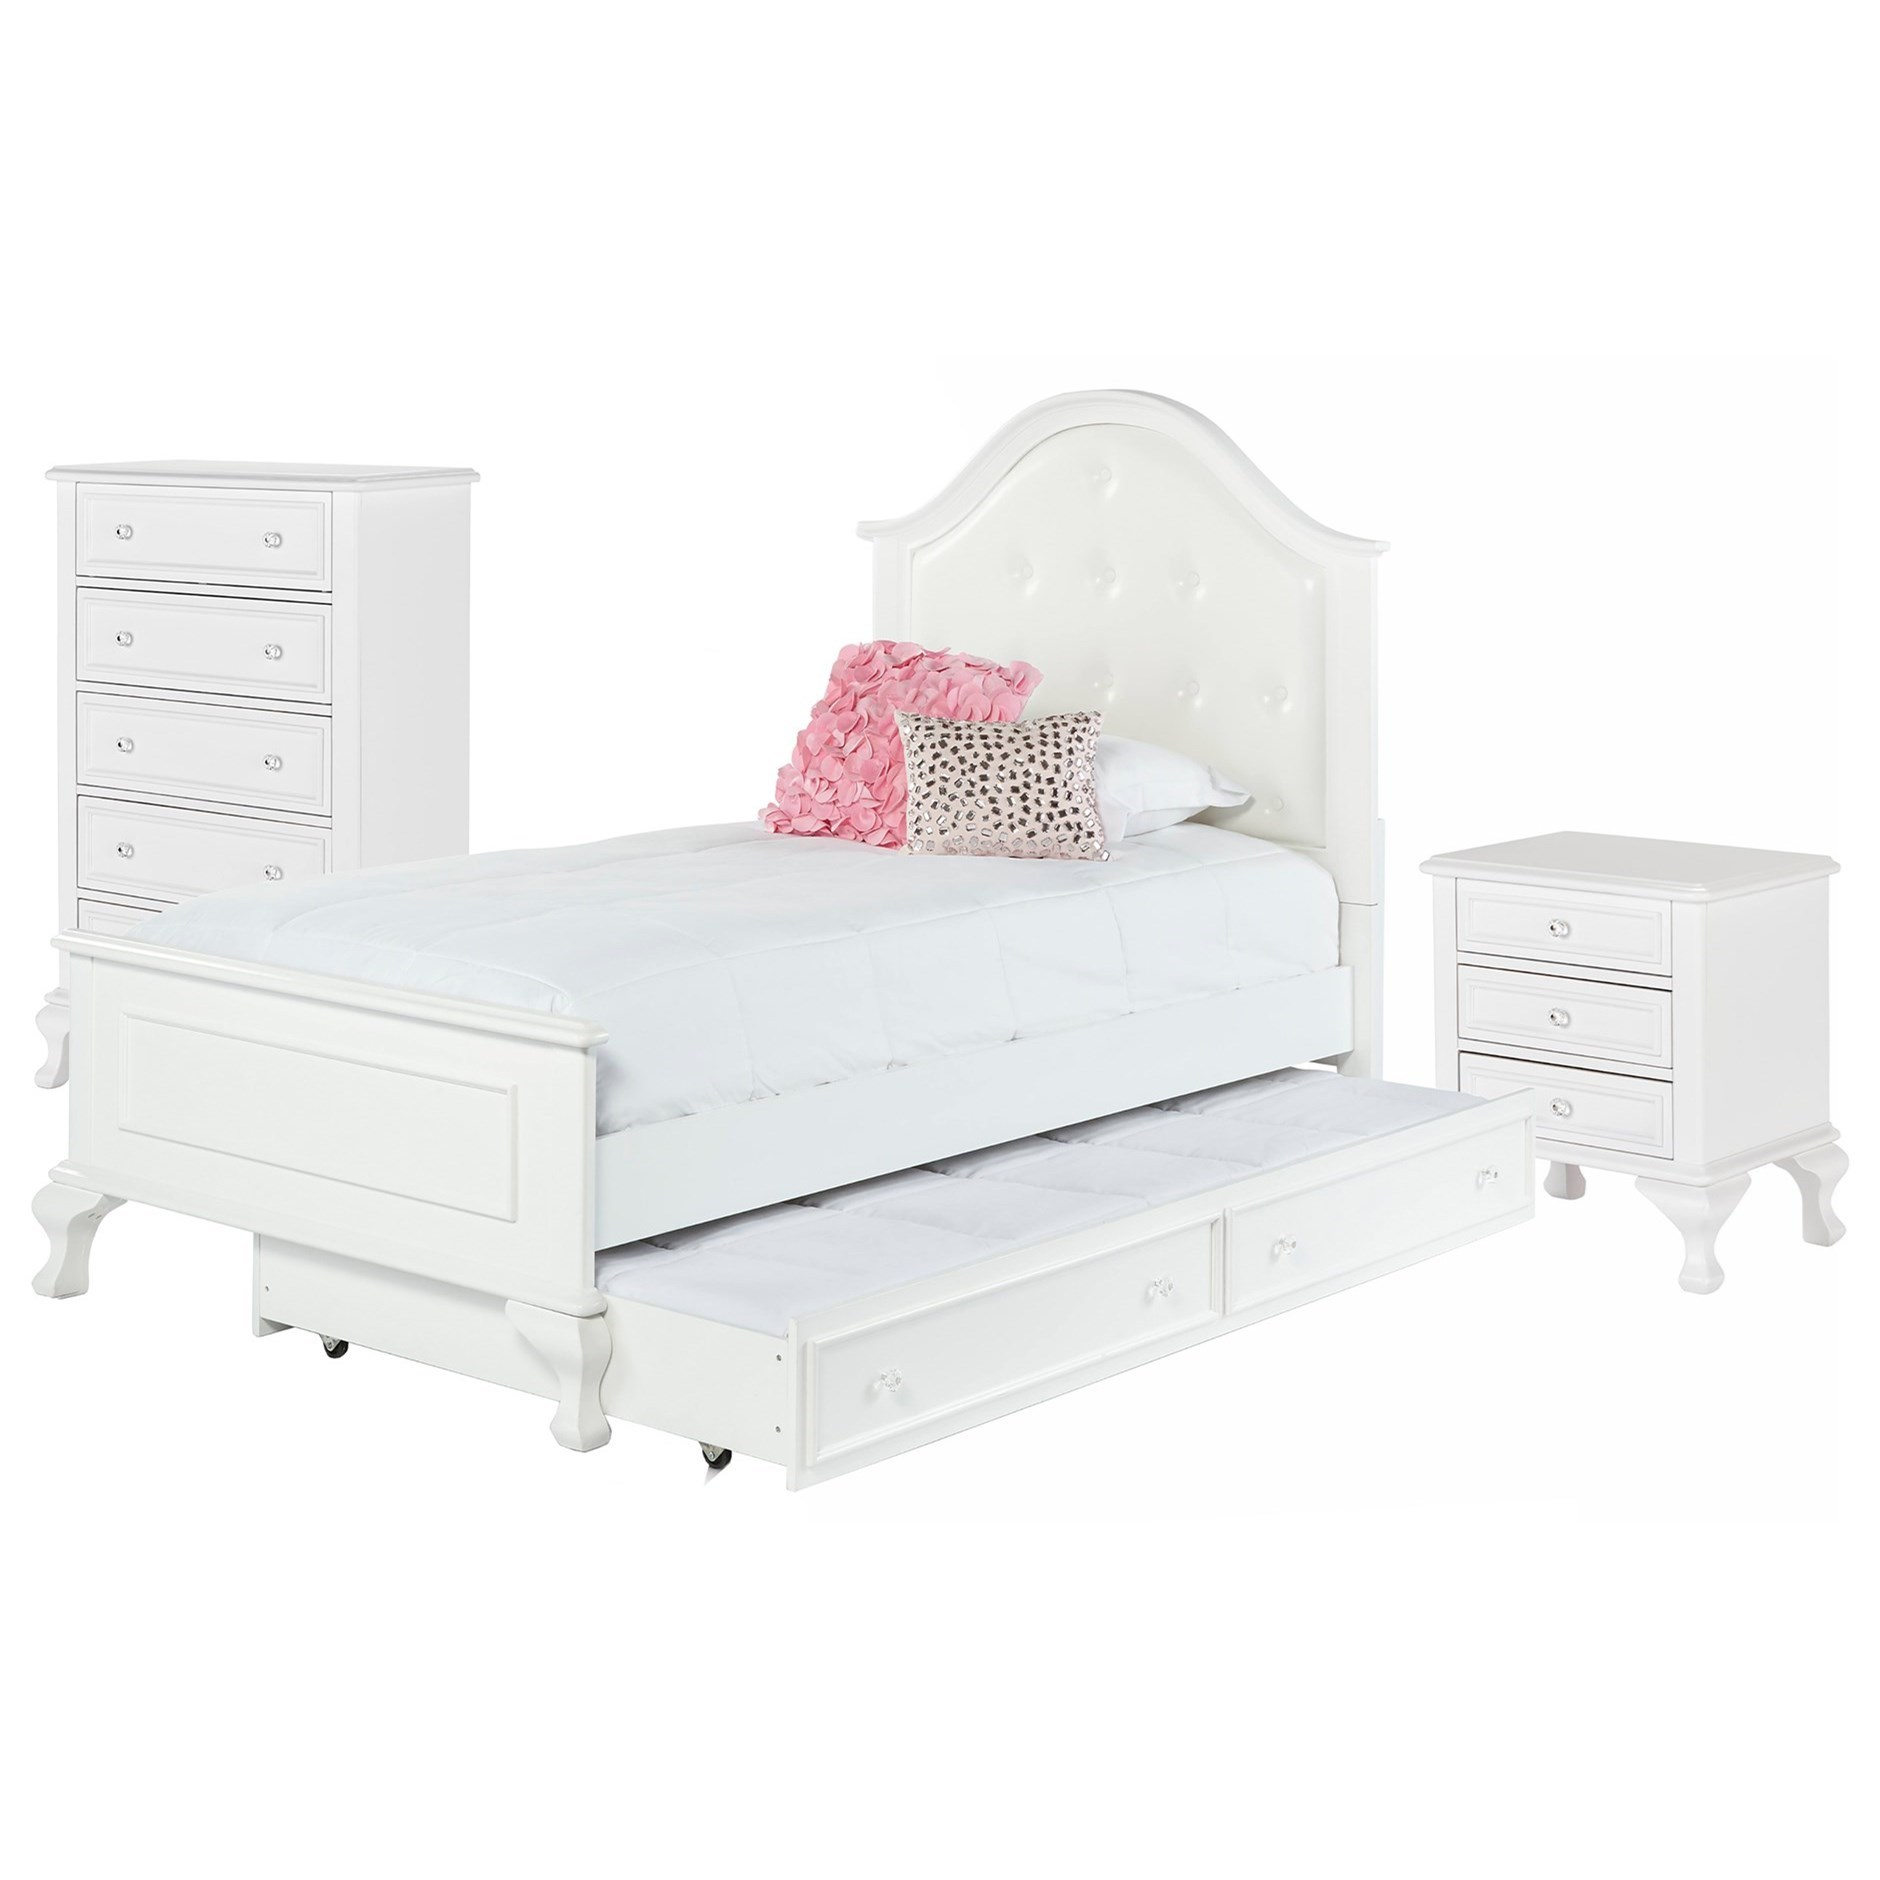 Jesse Twin Bed Room Group by Elements International at Wilcox Furniture